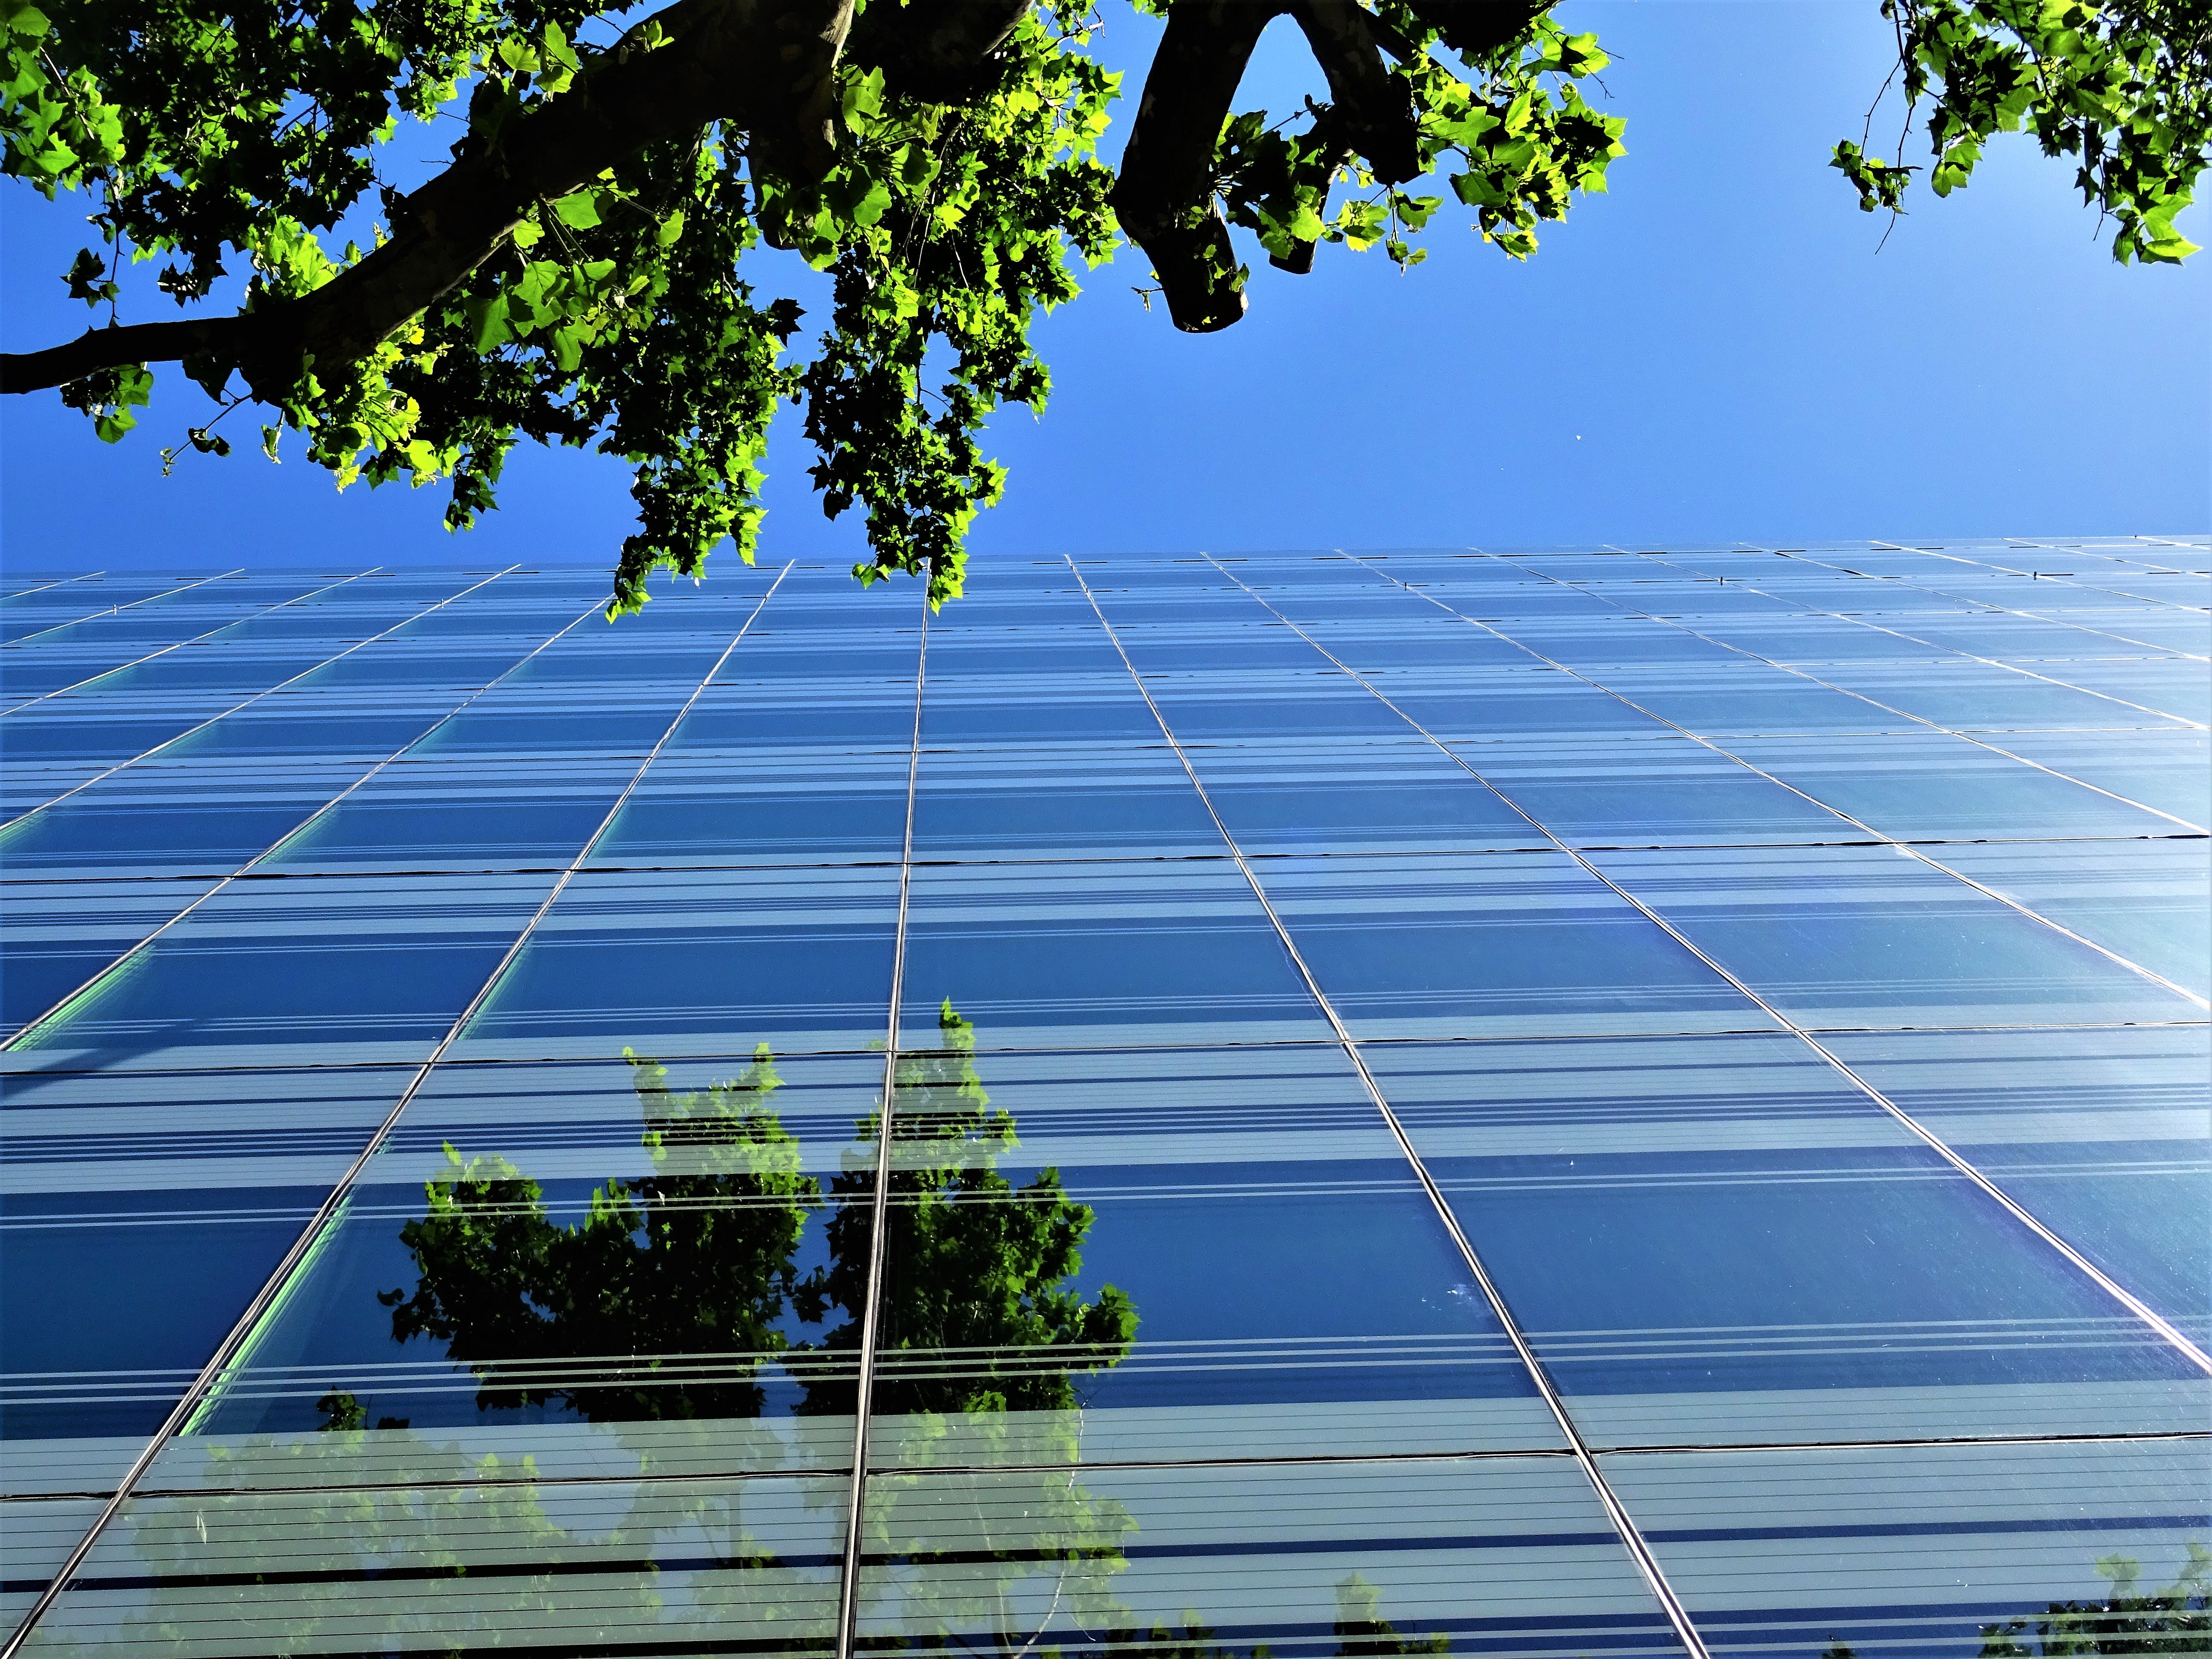 Low Angle Photography of Building Near Tree